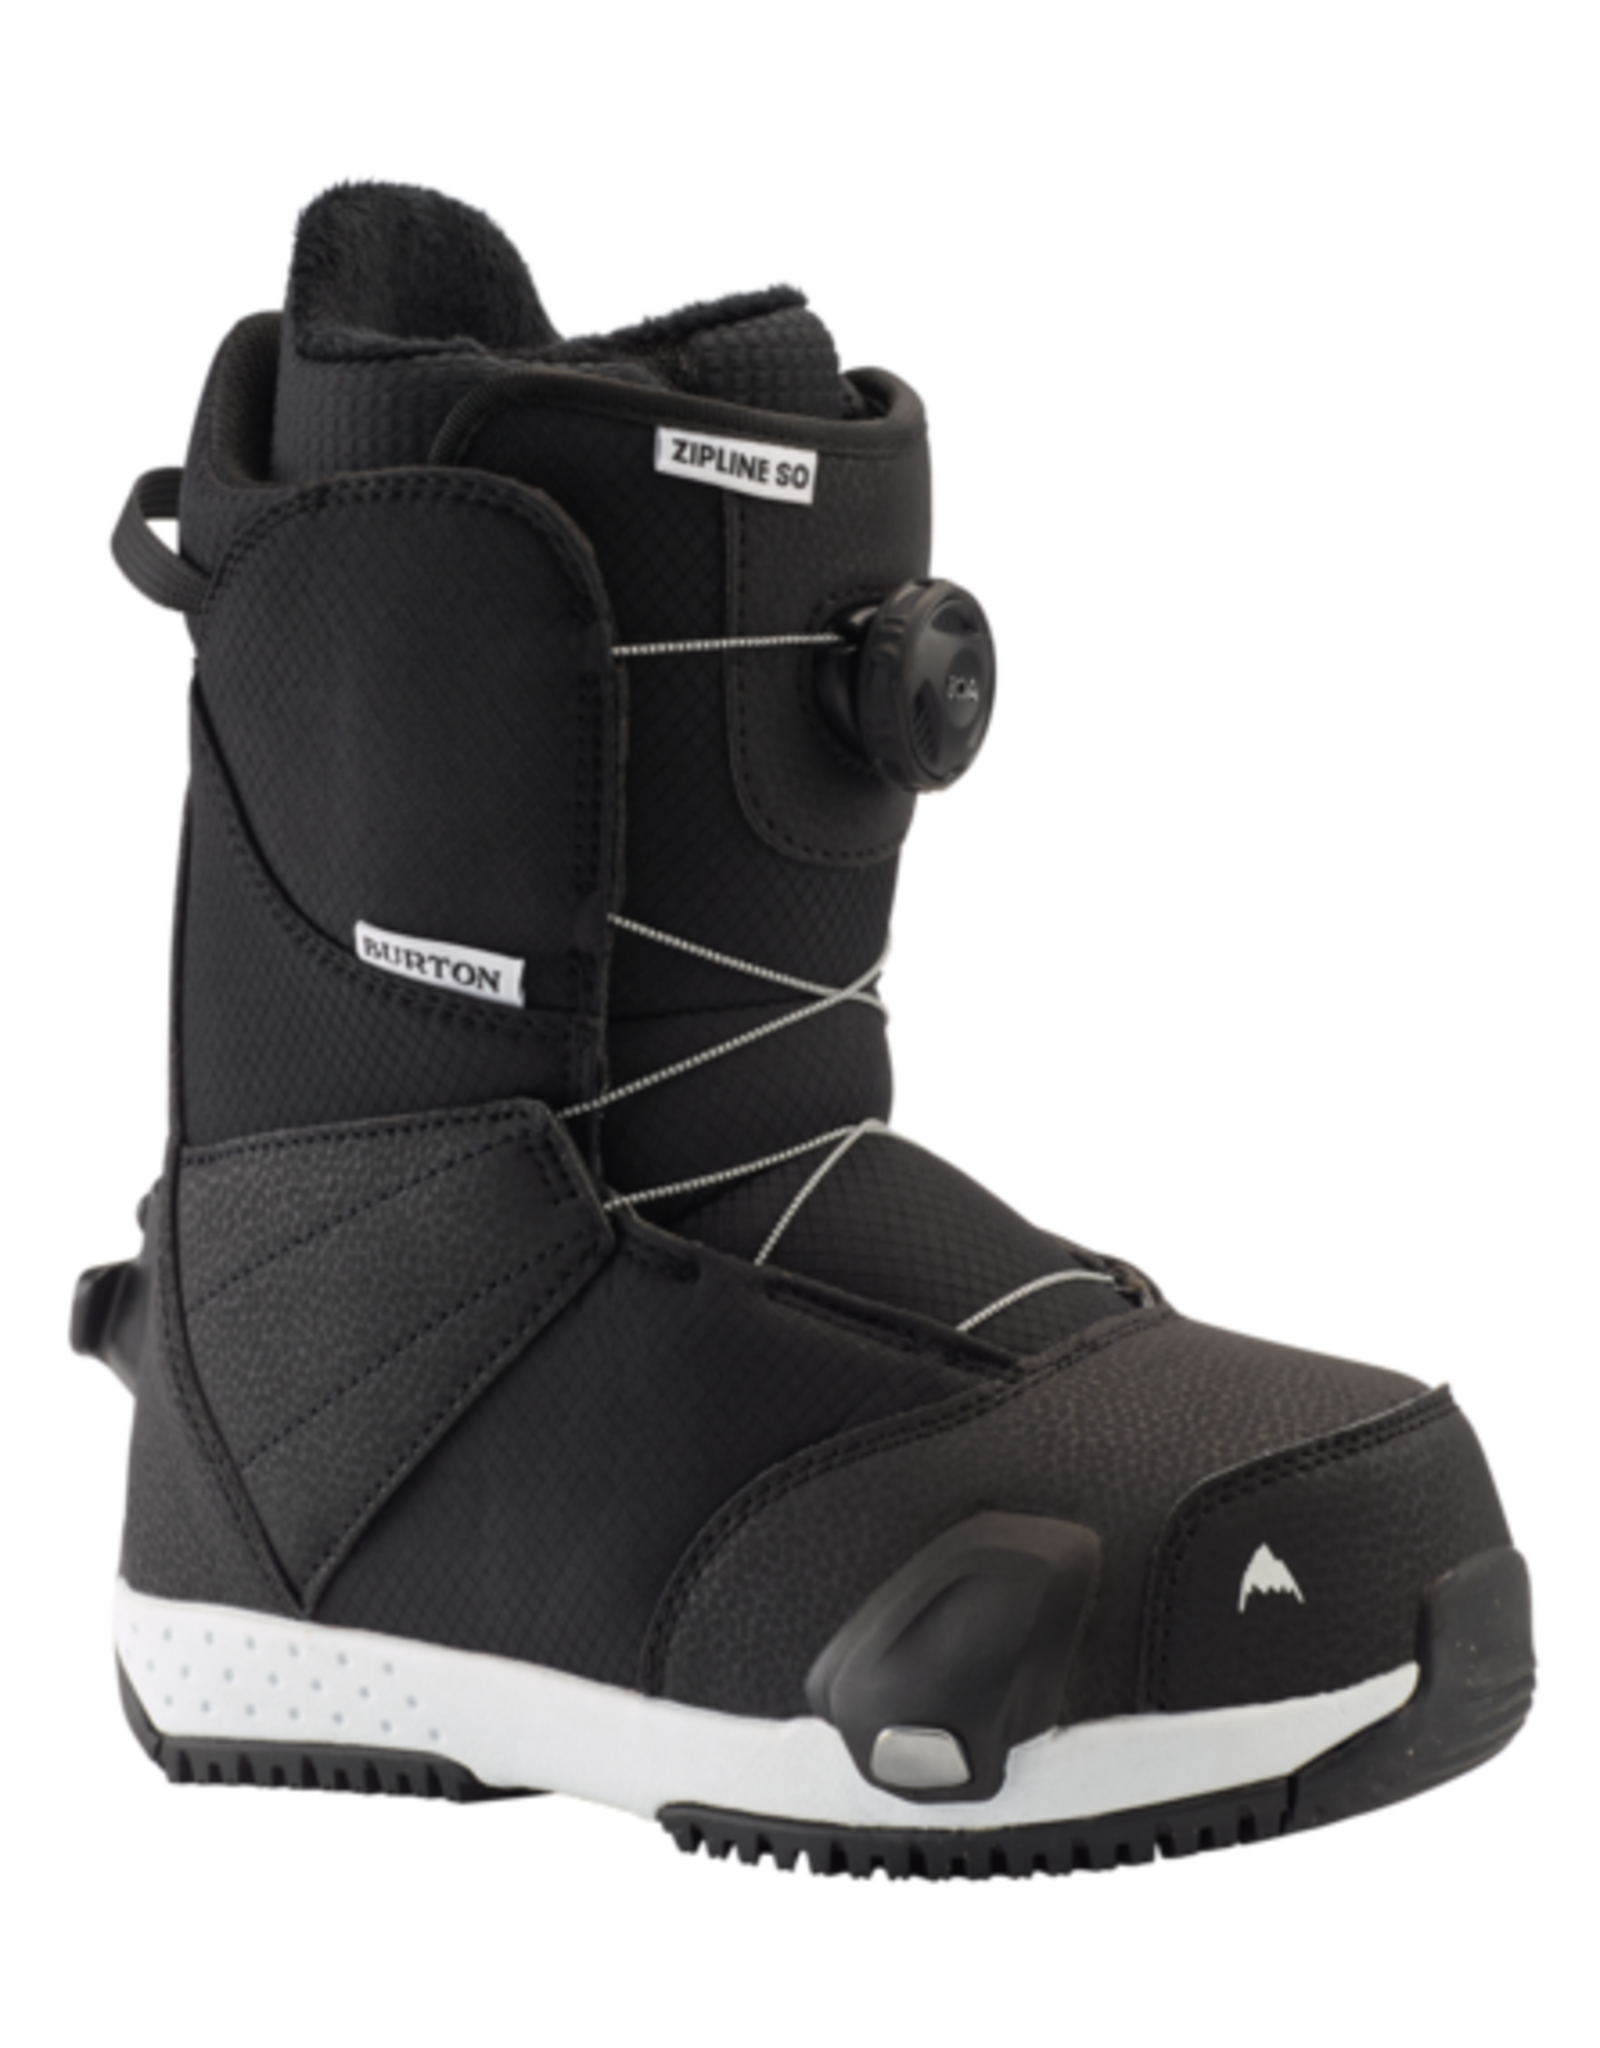 BURTON 2021 ZIPLINE STEP ON